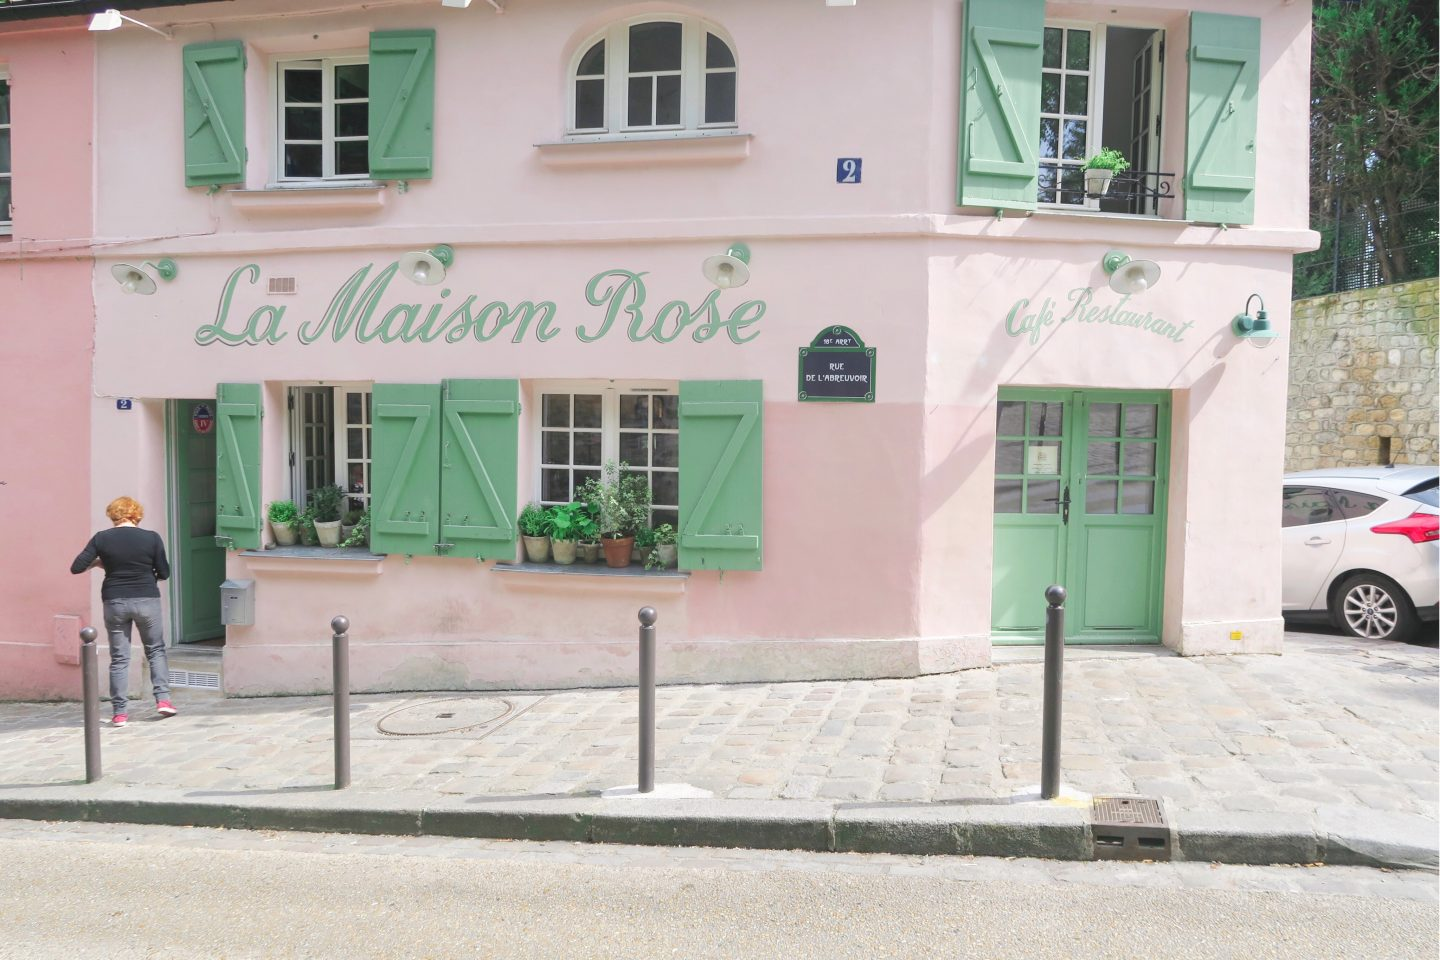 La Maison Rose, a little pink cafe A row of Parisian houses on Monmarte in day trip to Paris on a budget on francescasophia.co.uk